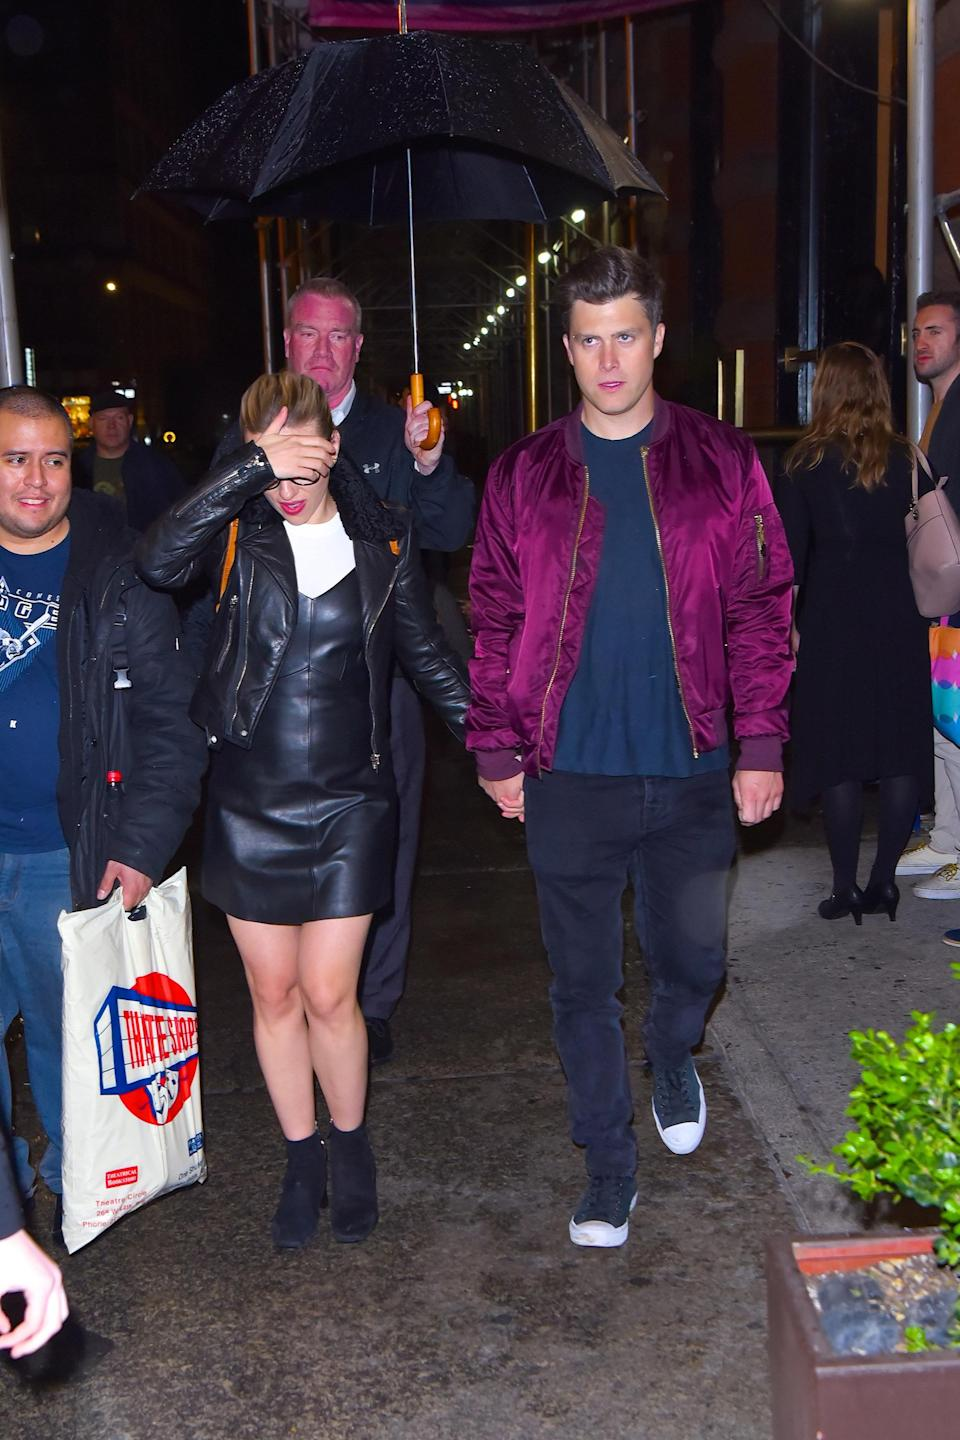 johansson shielding her face while walking hand in hand with jost